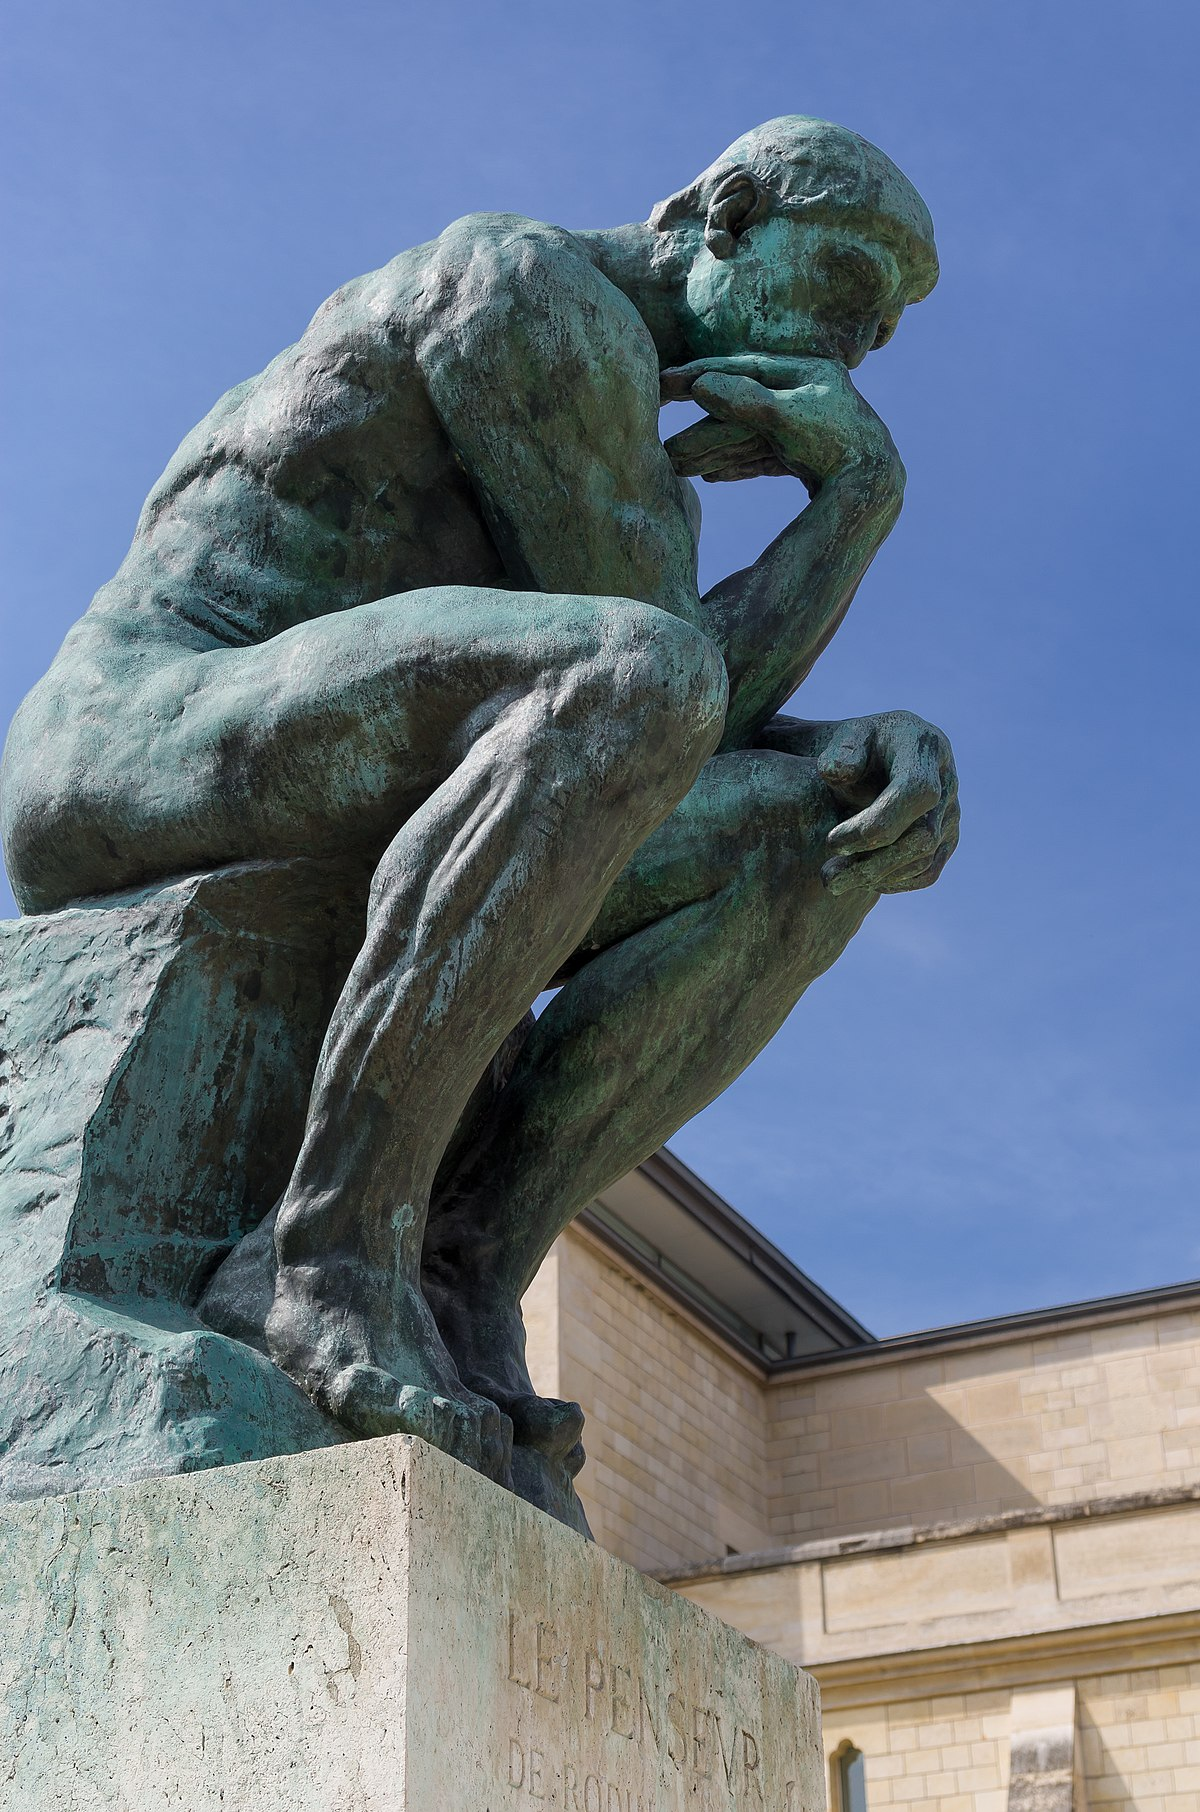 1200px-Le_Penseur_in_the_Jardin_du_Musée_Rodin,_Paris_14_June_2015